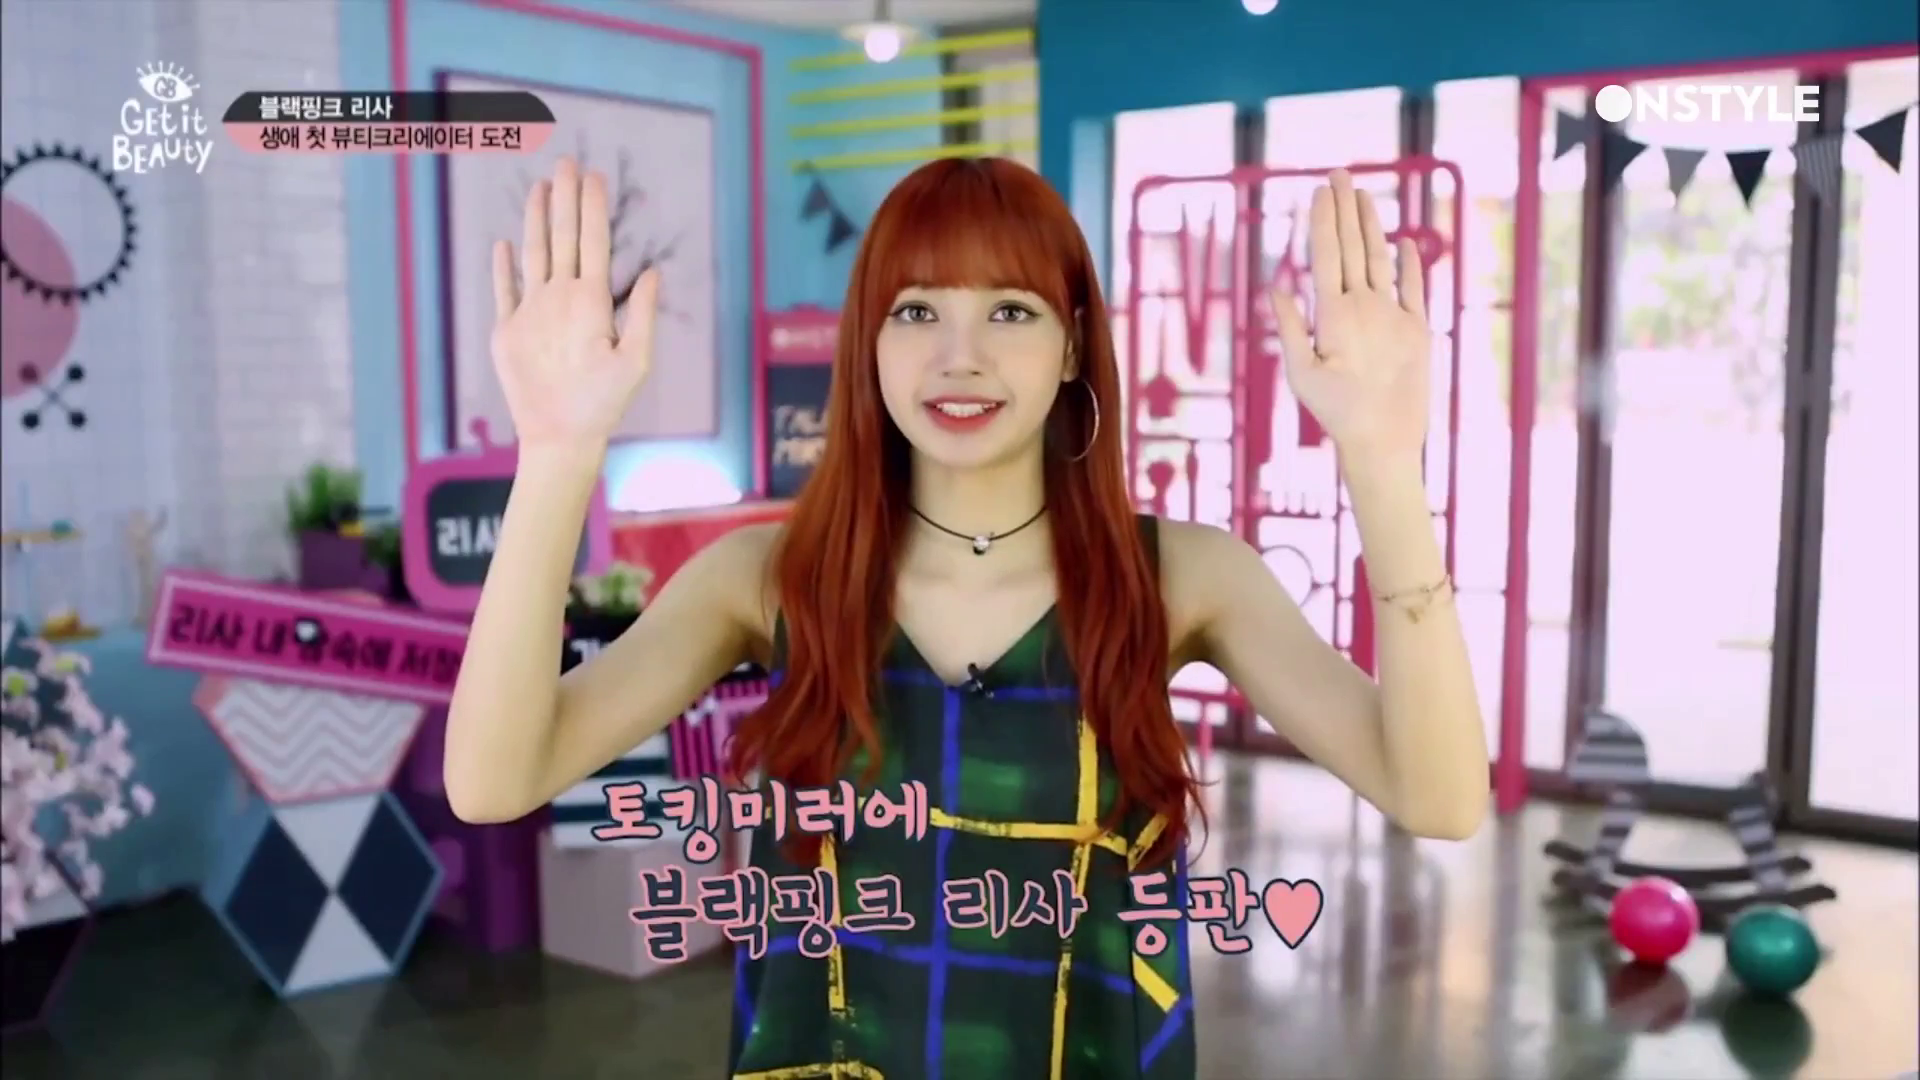 [SHOW] Lisa on OnStyle 'Get It Beauty 2017' – Talking Mirror